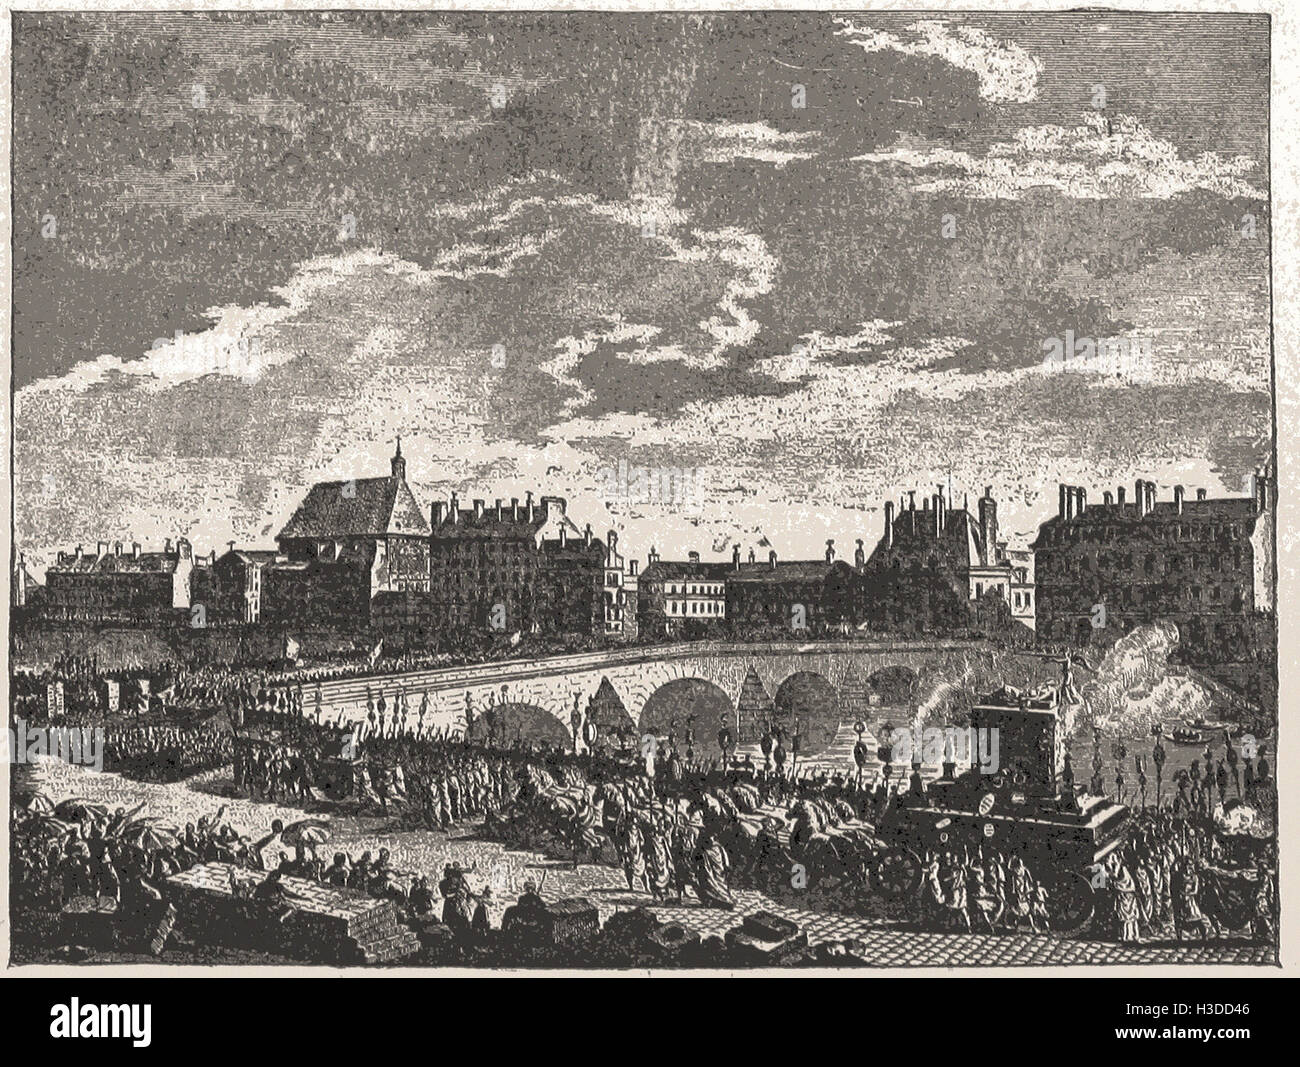 FUNERAL OF MIRABEAU, APRIL, 1791 - Stock Image